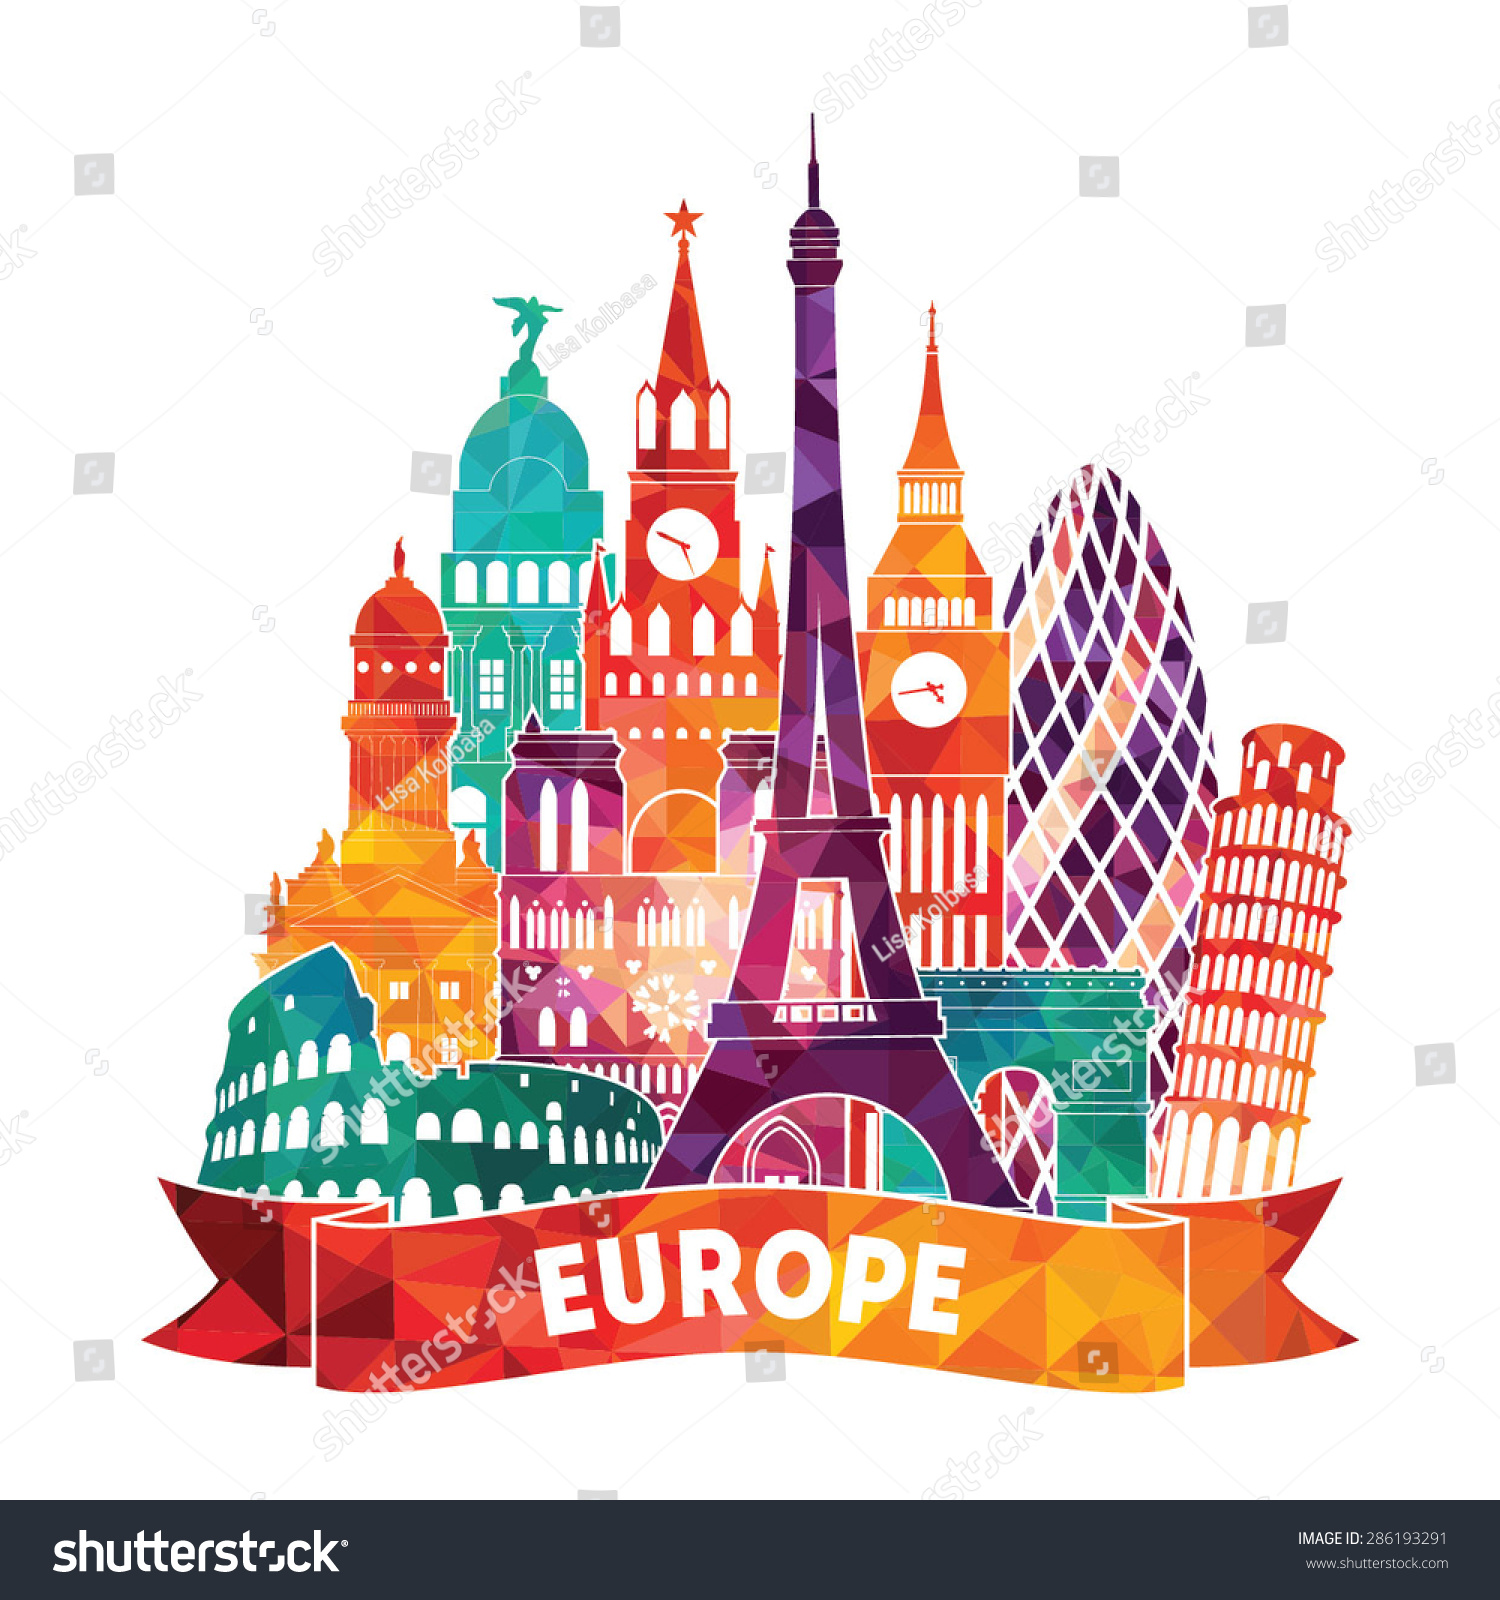 vector illustration of europe - photo #7